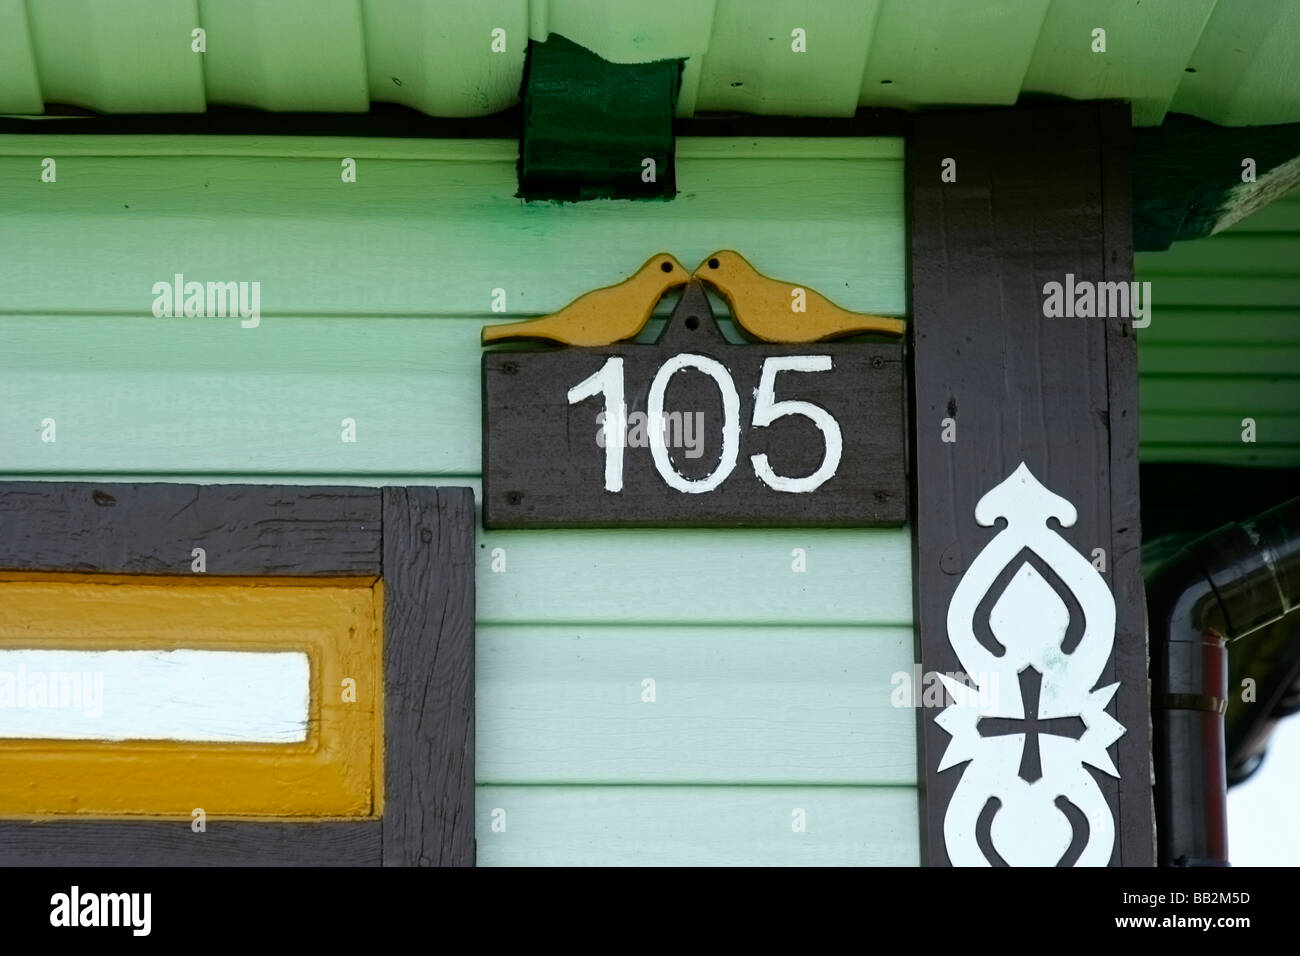 105 house number in Soce village, Poland - Stock Image